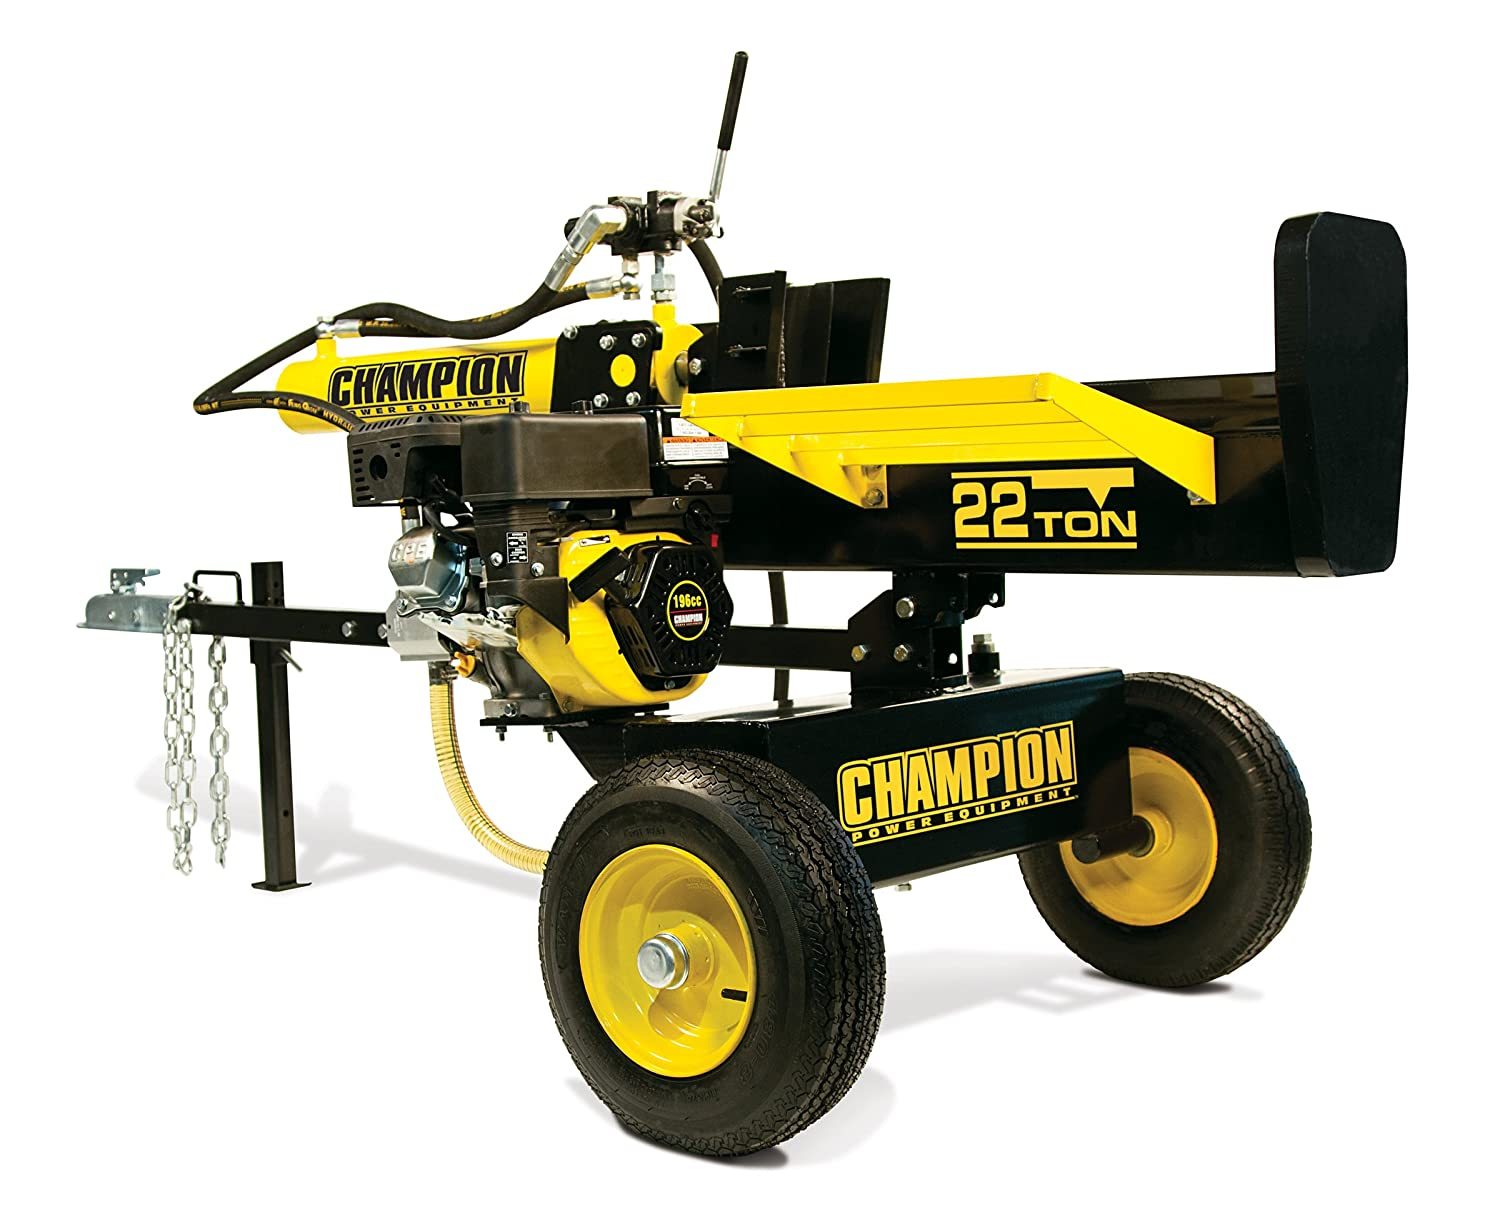 Champion Power Equipment No.92221 Log Splitter Black Friday Deal